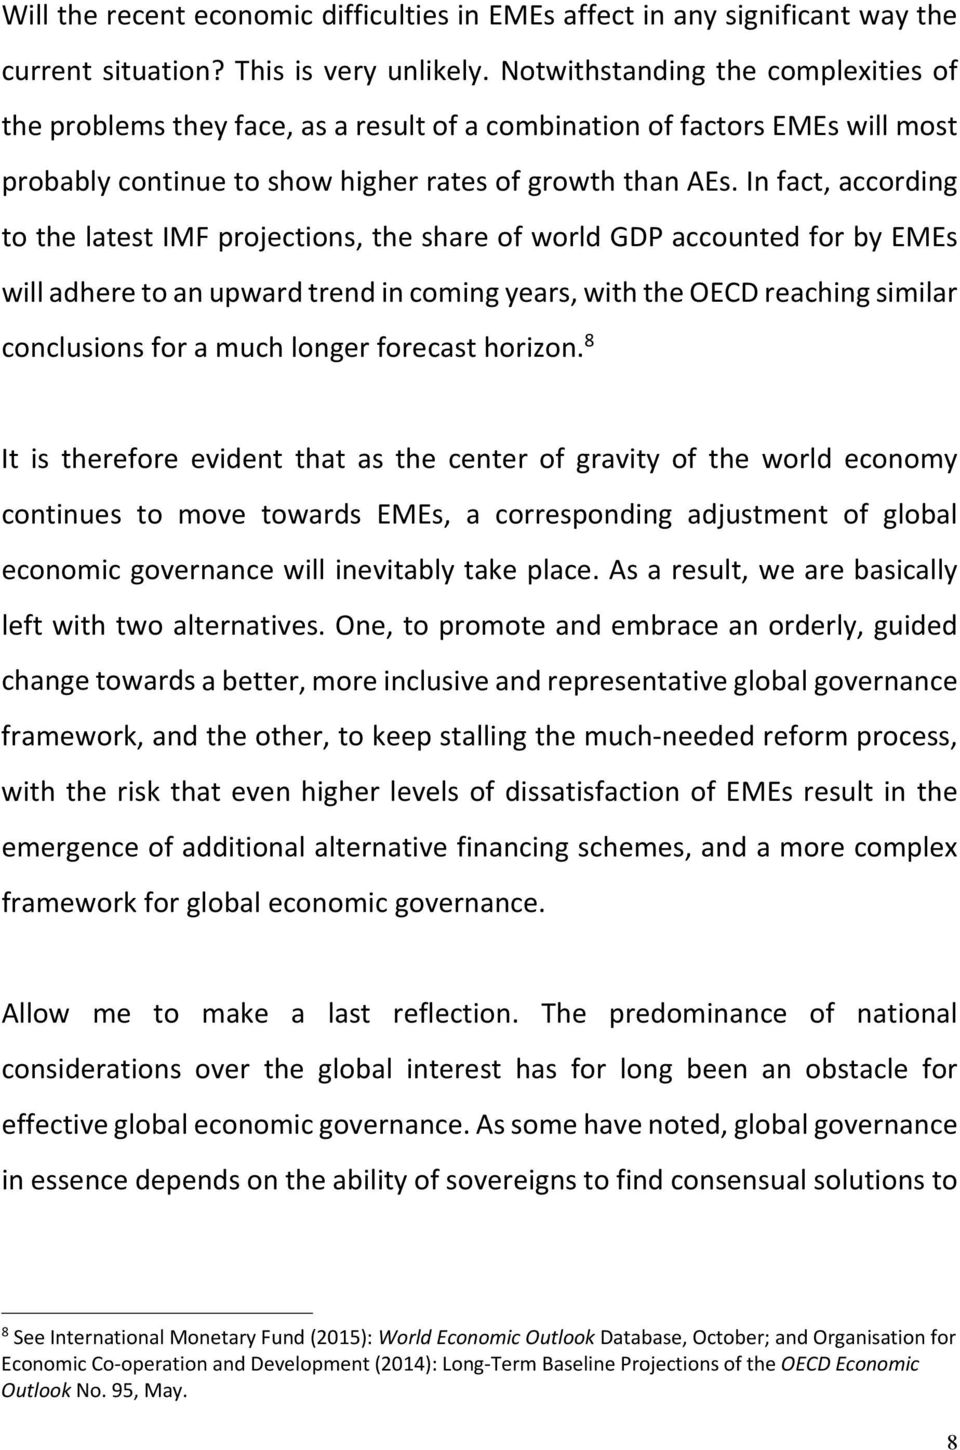 In fact, according to the latest IMF projections, the share of world GDP accounted for by EMEs will adhere to an upward trend in coming years, with the OECD reaching similar conclusions for a much